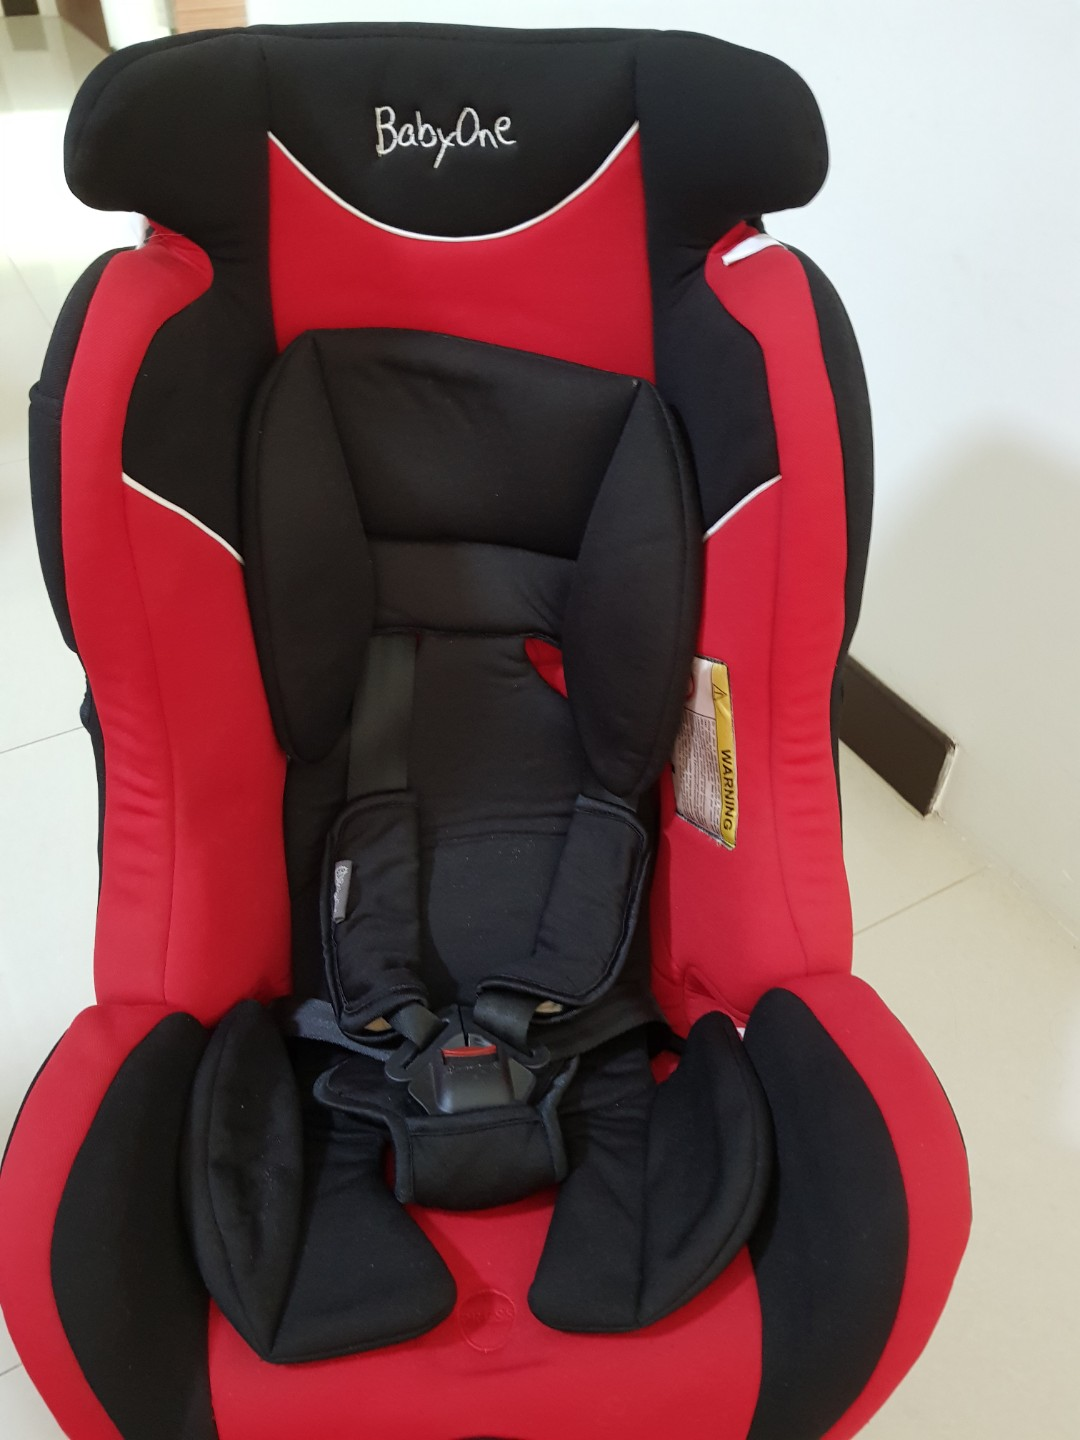 Babyone Baby Jogger Babyone Baby Car Seat Adjustable